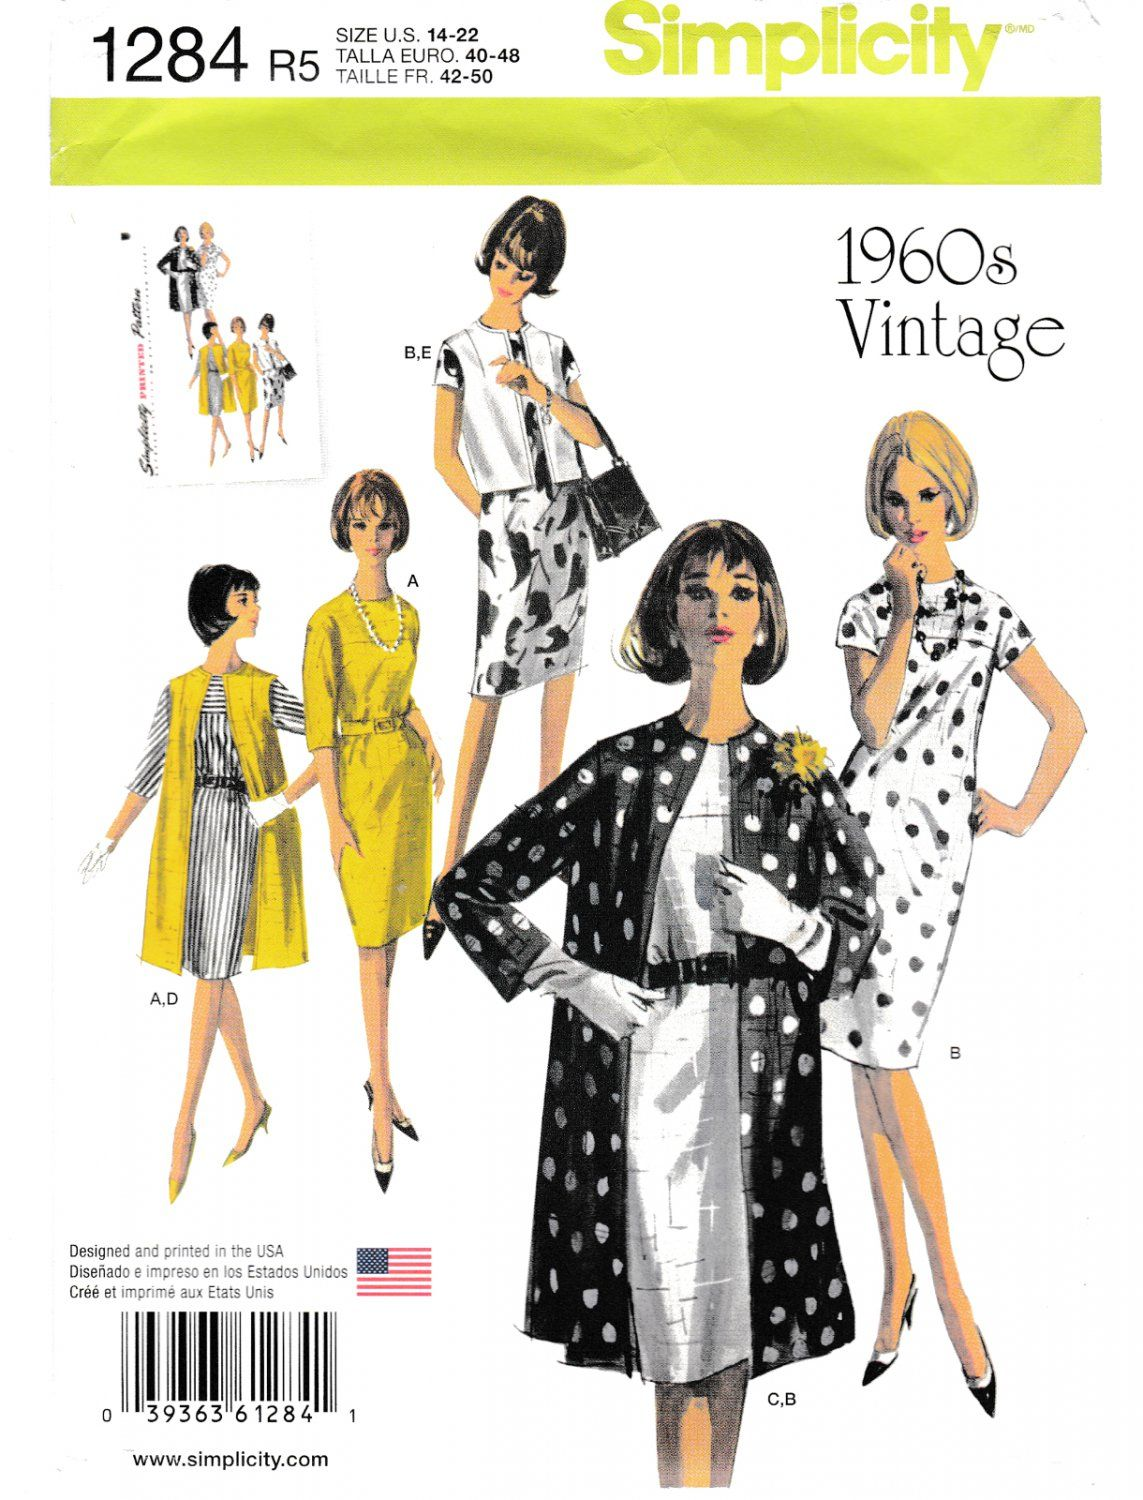 14-16-18-20-22 Various, Coat /& Vest in Two Lengths Simplicity Sewing Pattern 1284: Misses Vintage 1960s Dress Size R5